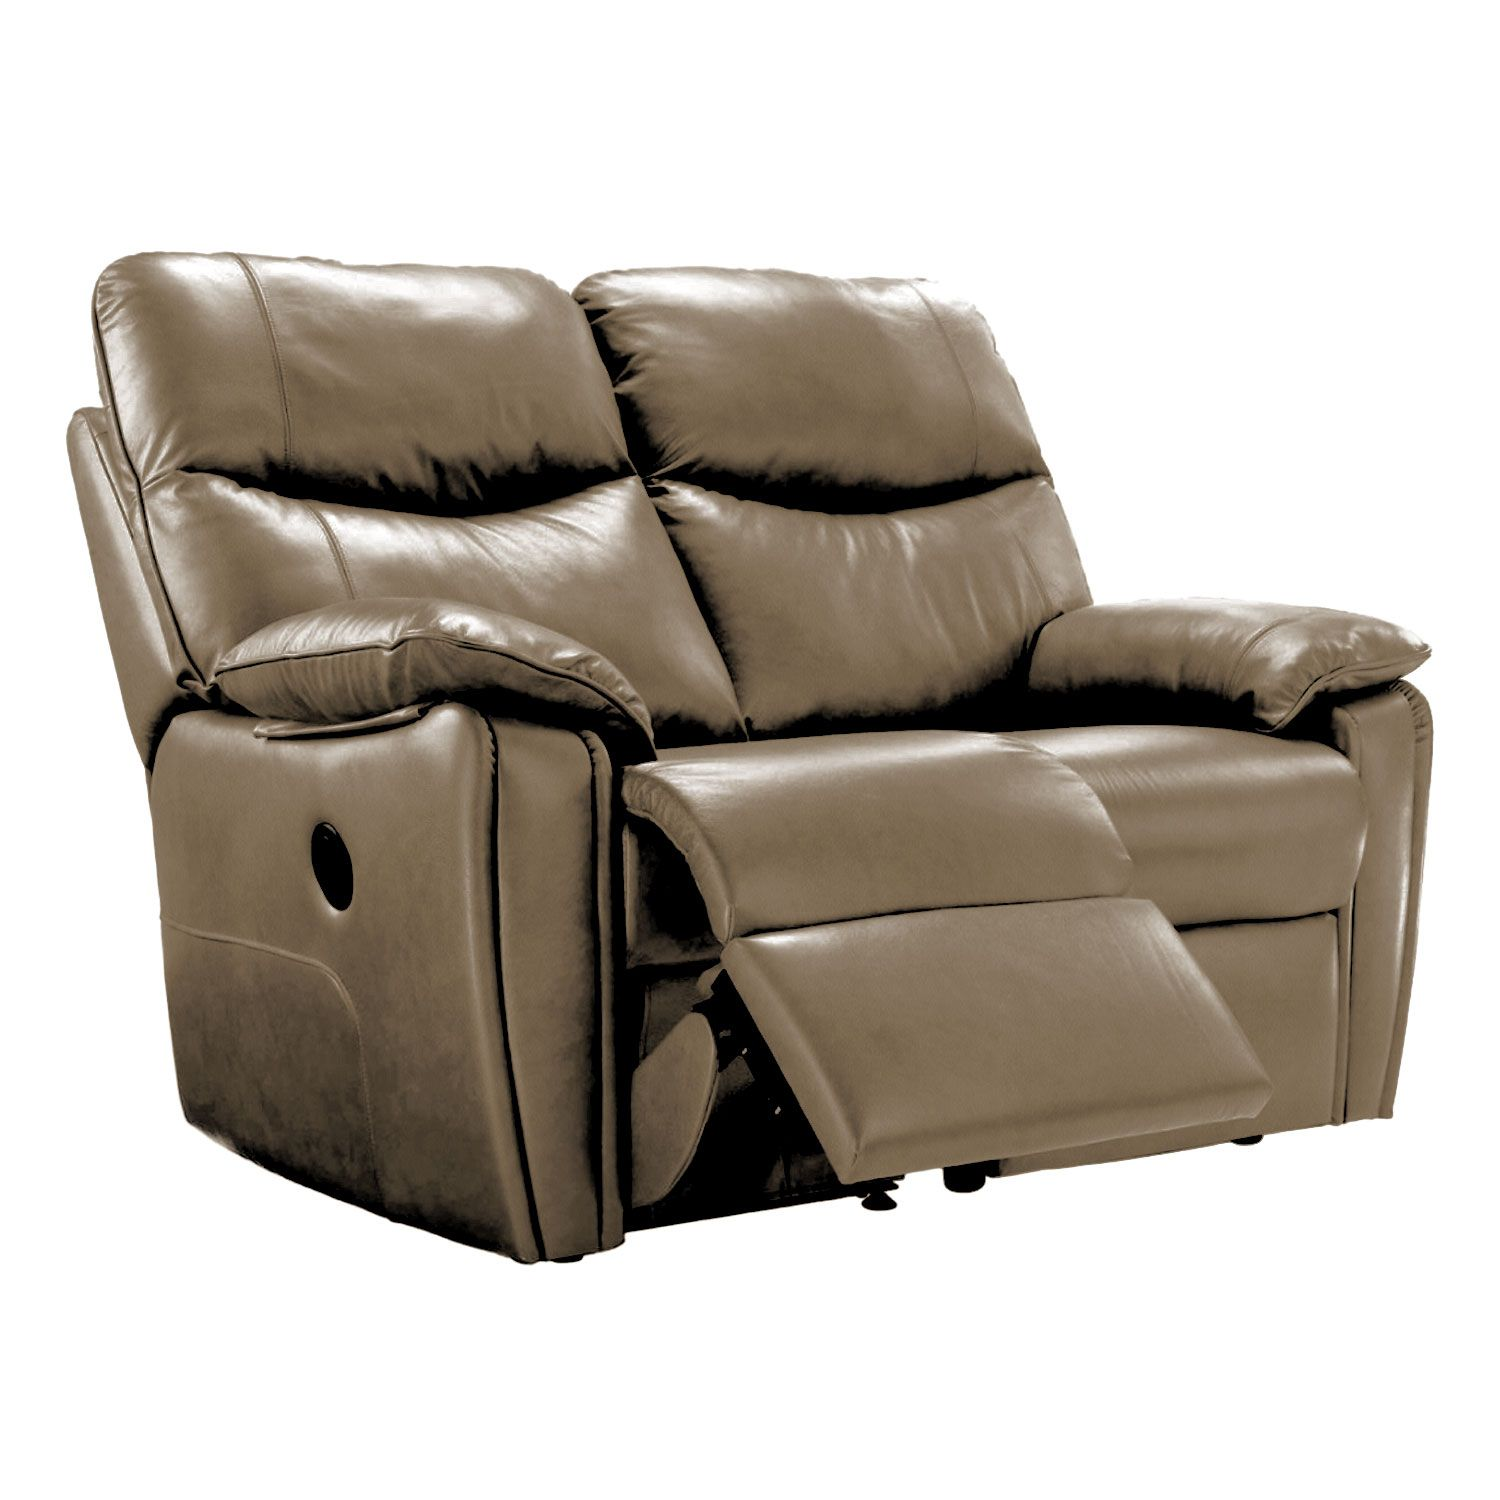 G Plan Henley 2 Seater Left Manual Recliner Leather Sofa